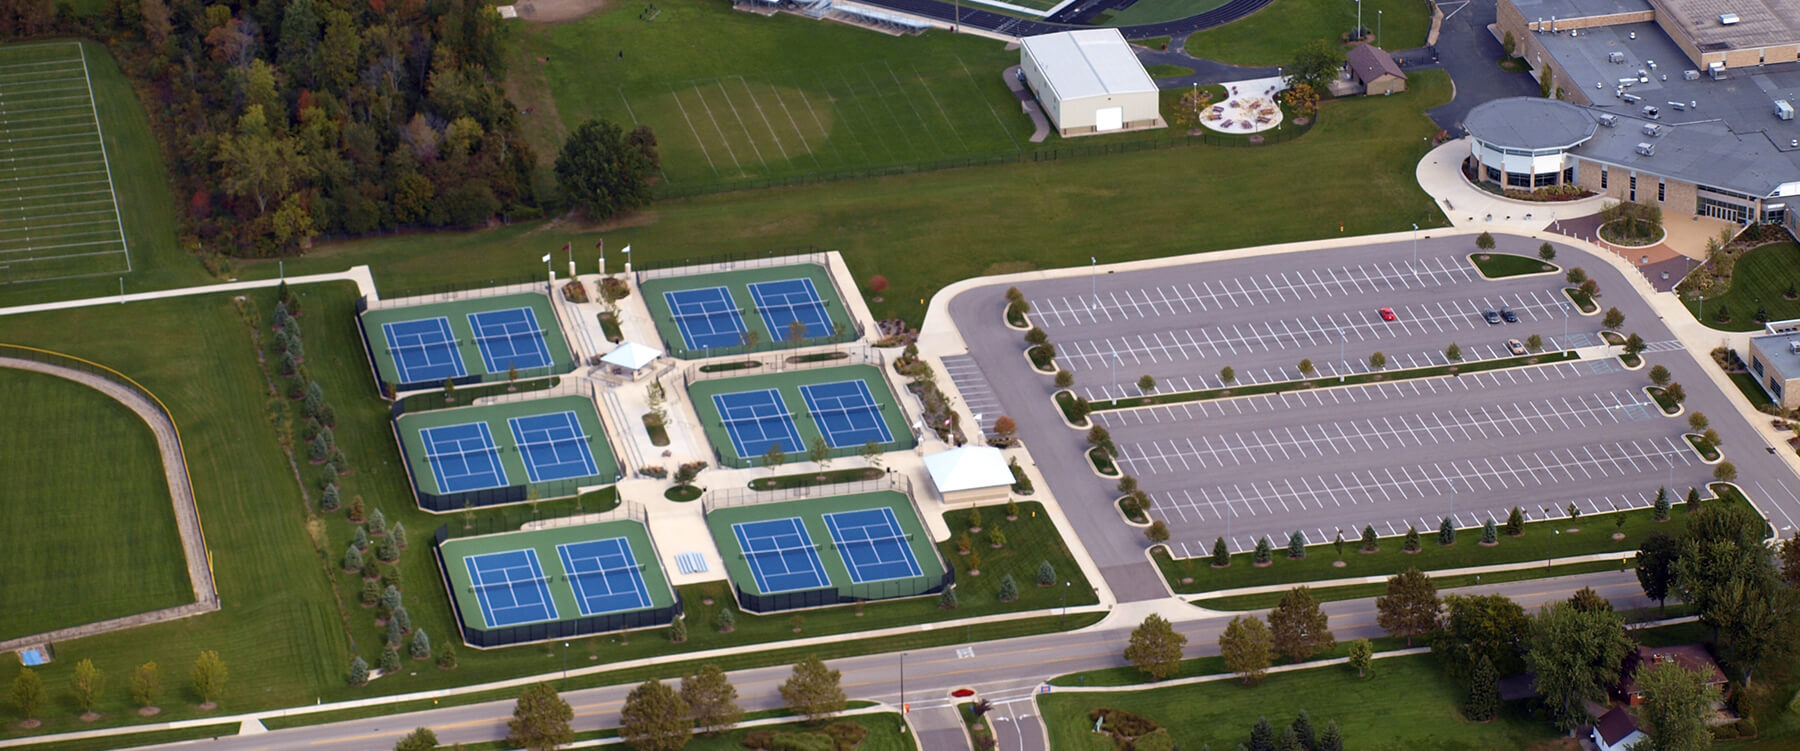 Holland Christian Schools Tennis Complex